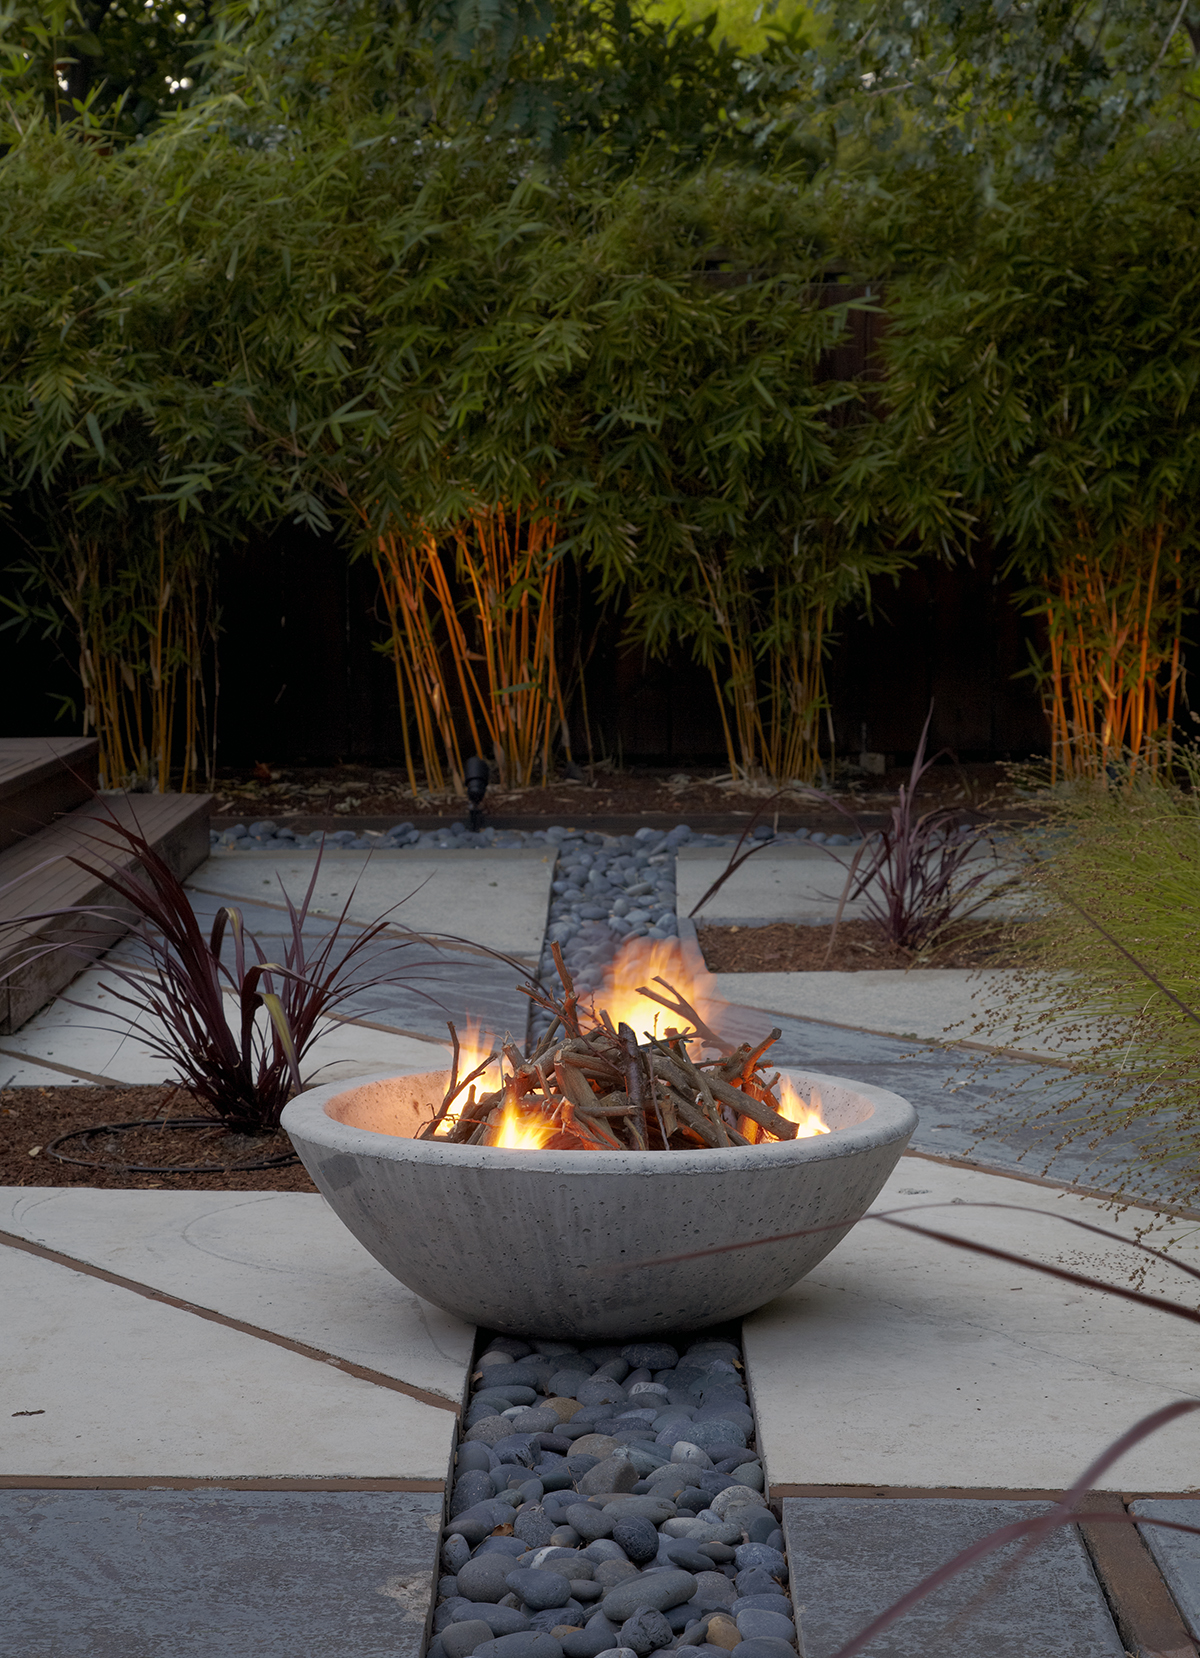 Landscape Inspiration: A Stylish Fire Garden